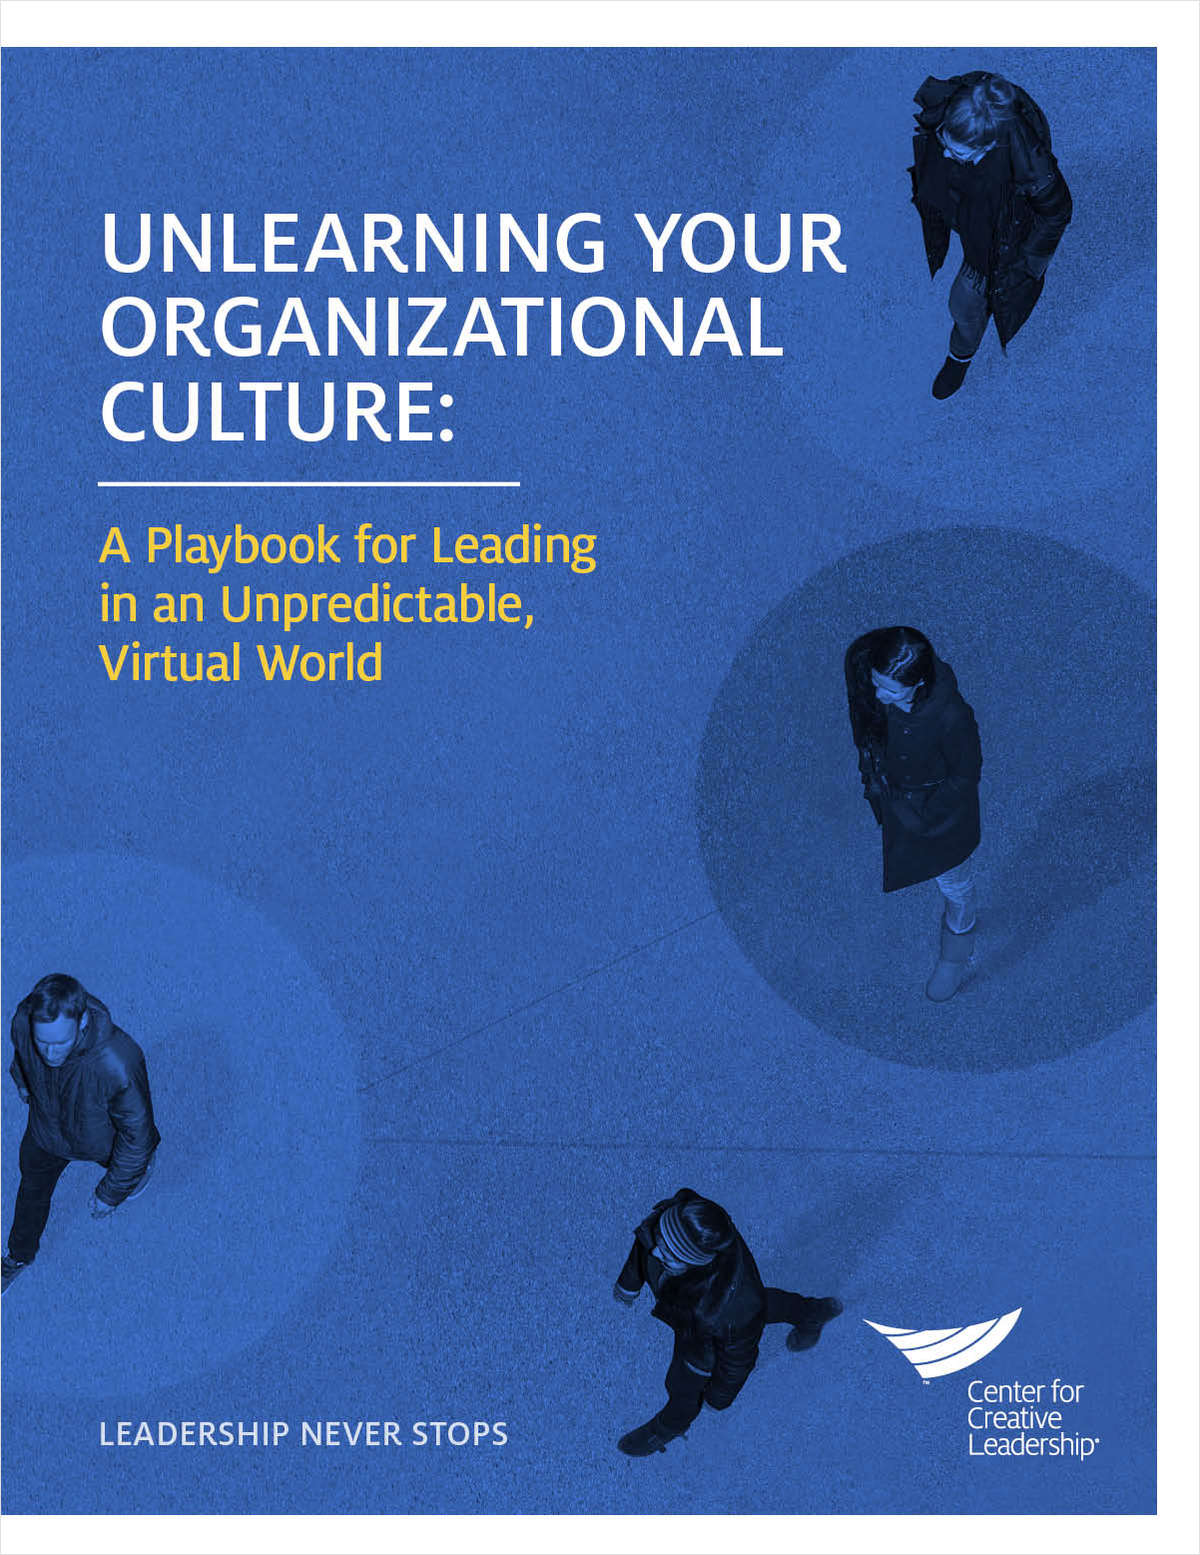 Unlearning Your Organizational Culture: A Playbook for Leading in an Unpredictable, Virtual World